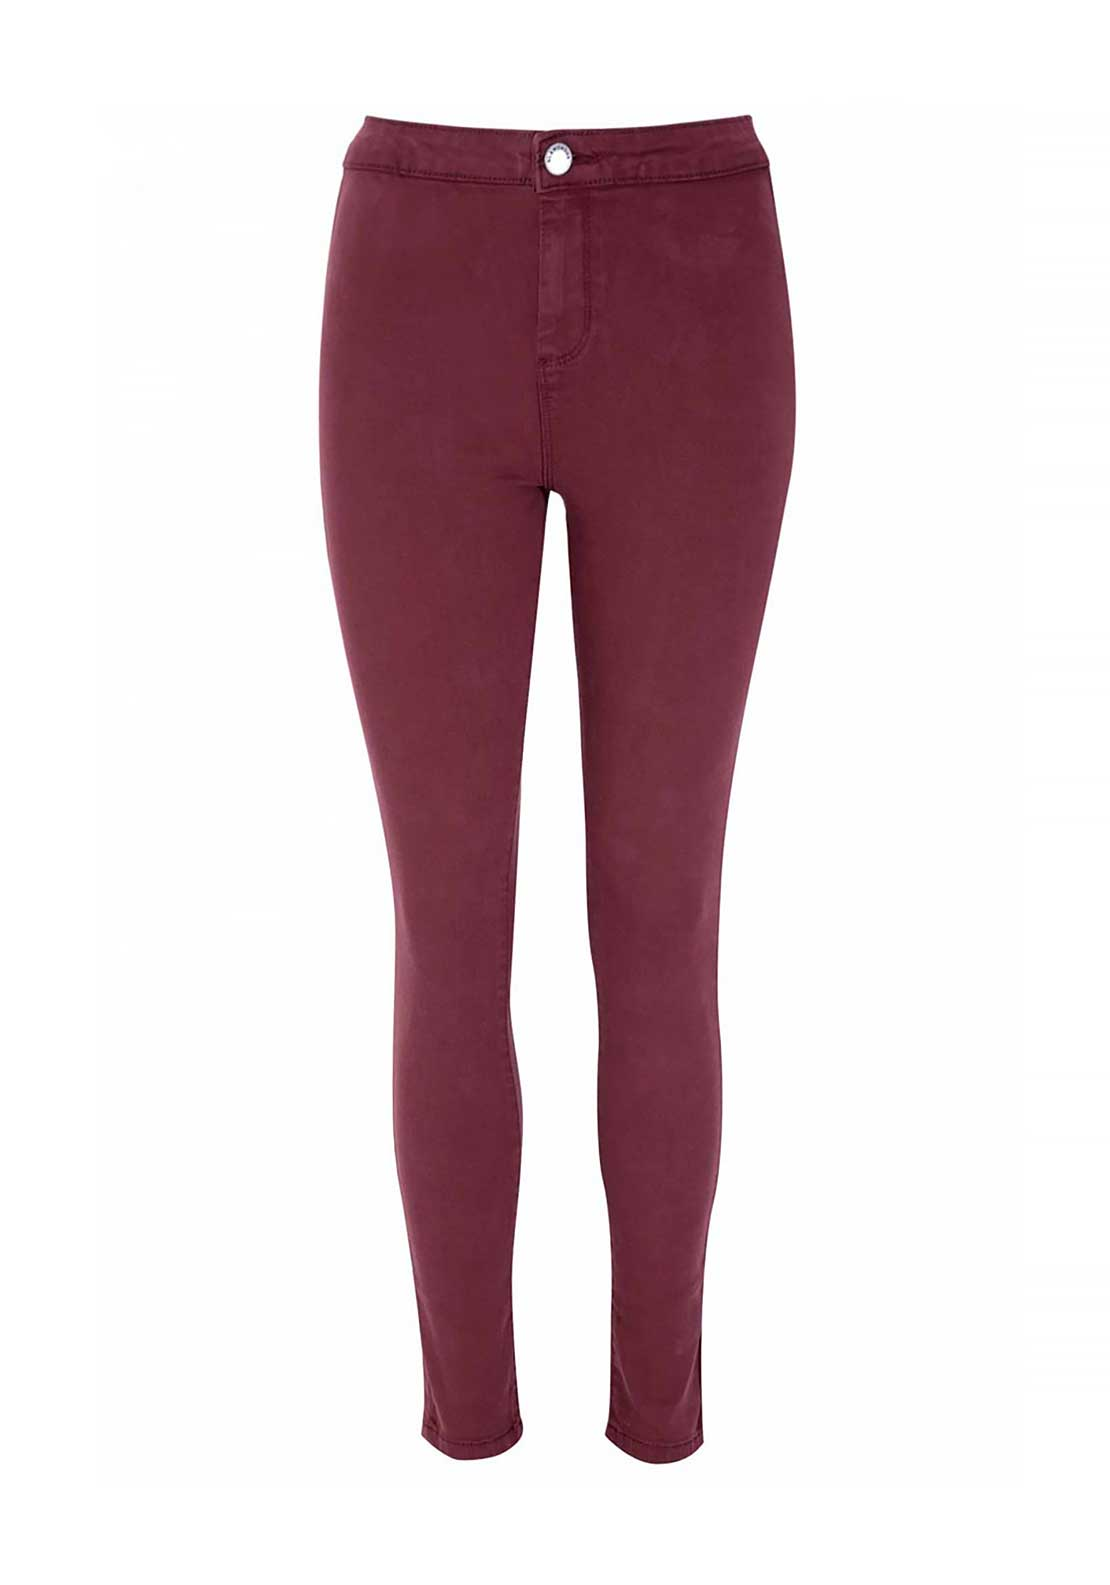 Glamorous Stretch Jeggings, Burgundy